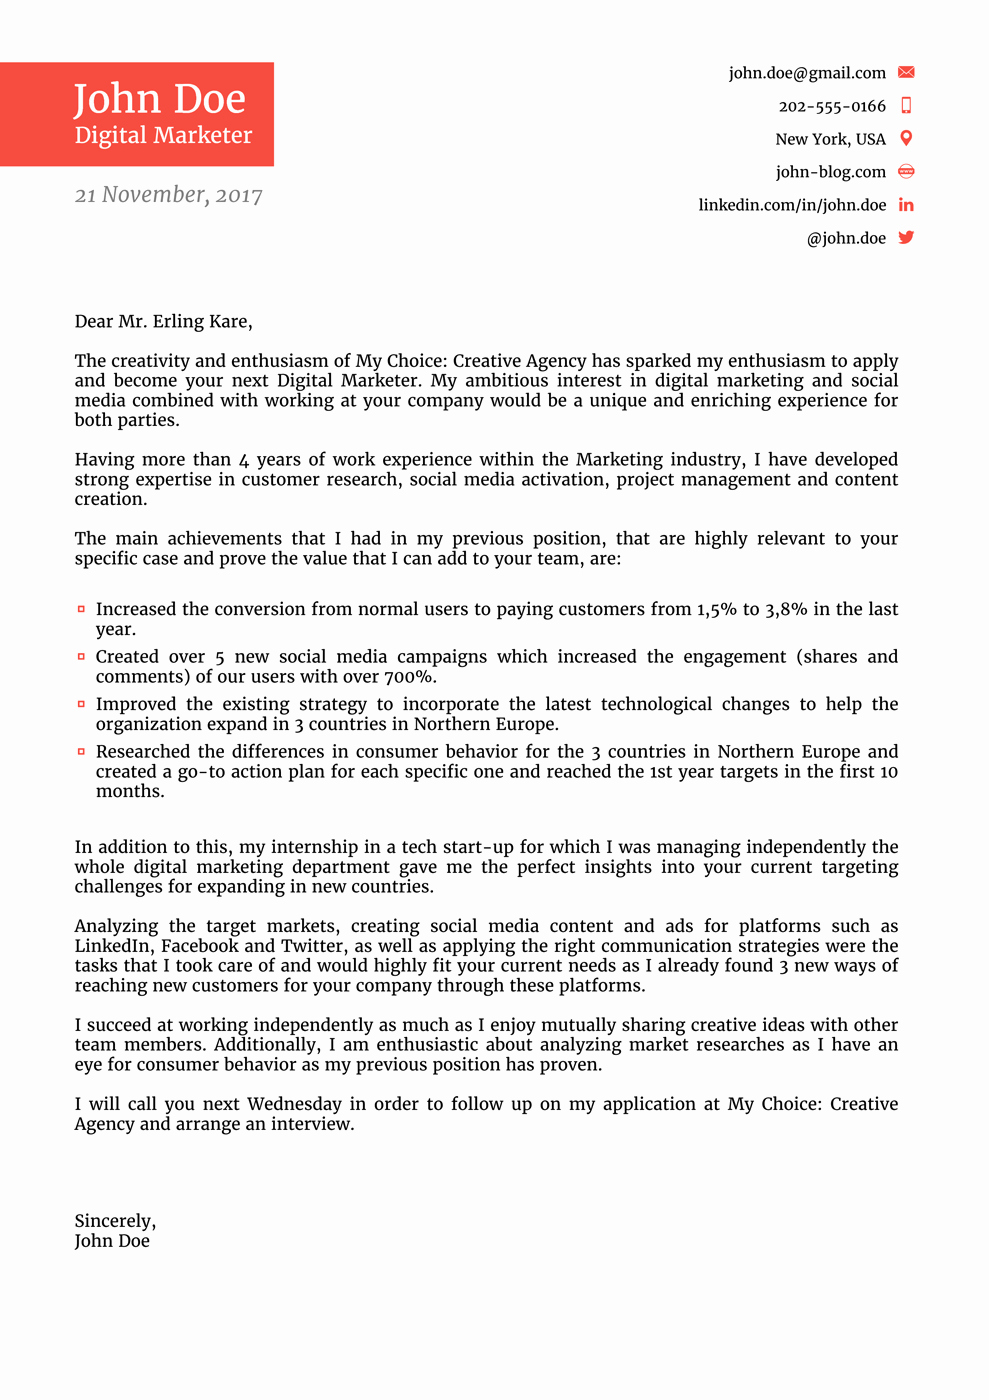 Free Job Cover Letter Template Best Of Cover Letter Templates for 2019